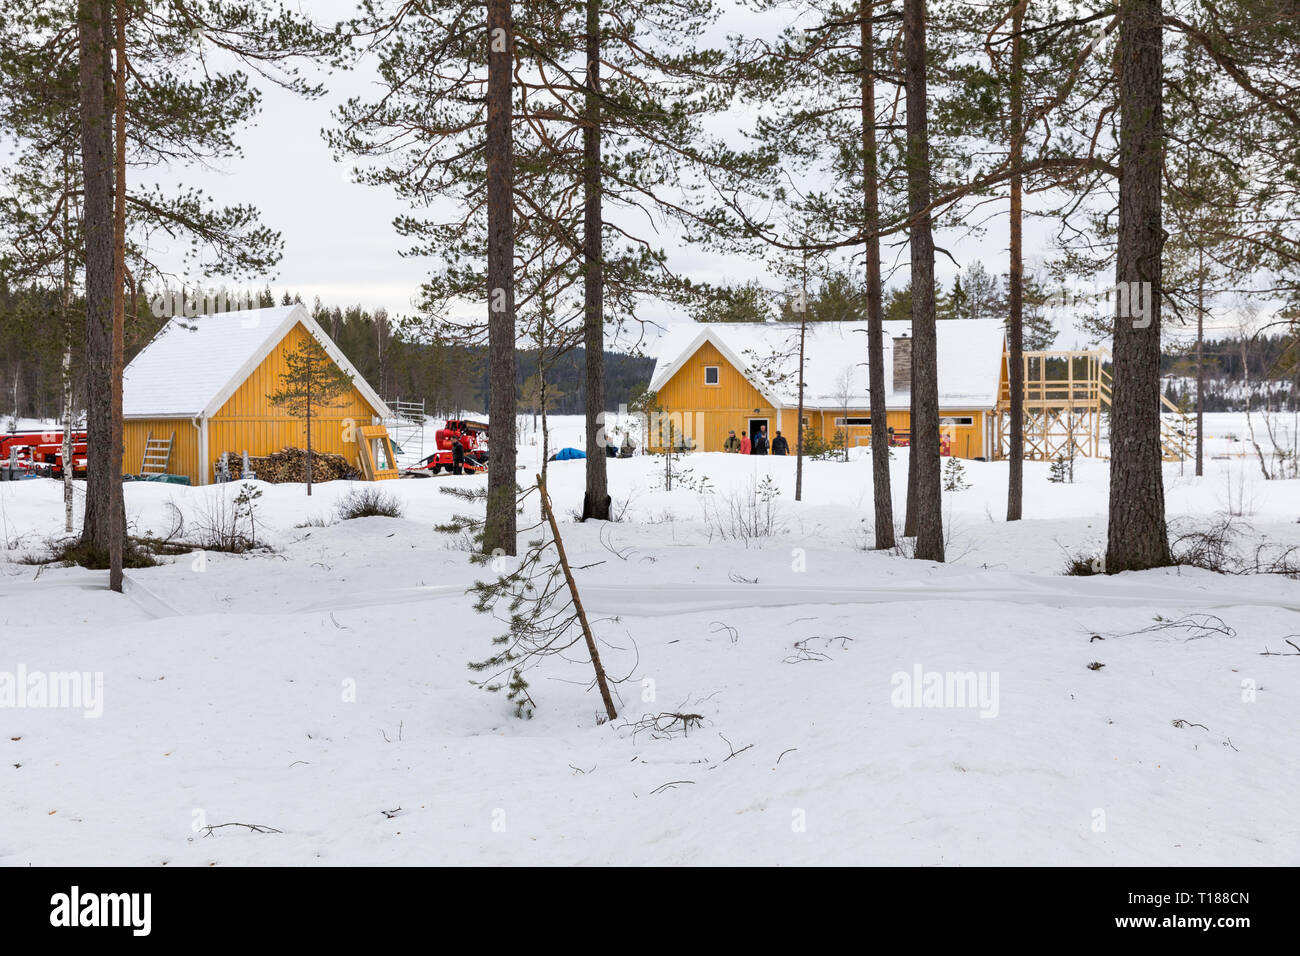 hakadal-norway-24th-march-2019-final-preparations-taking-place-ready-to-start-filming-the-25th-james-bond-film-in-the-forest-north-of-oslo-norway-credit-paul-smithalamy-live-news-T188CN.jpg